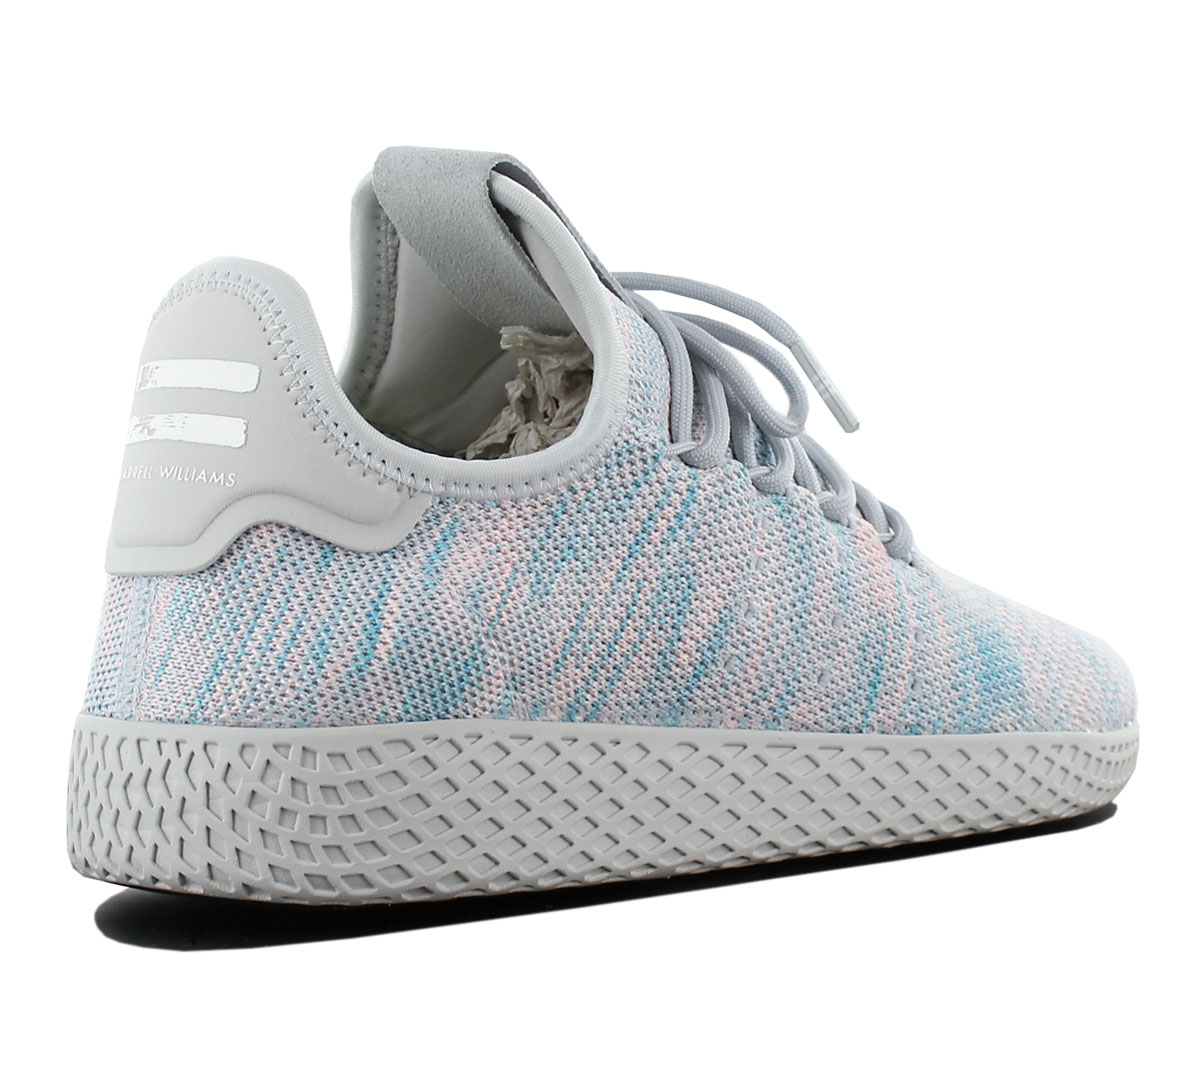 462abf8404765 Adidas Pharrell Williams Pw Tennis Hu Trainers Shoes Sports By2671 ...